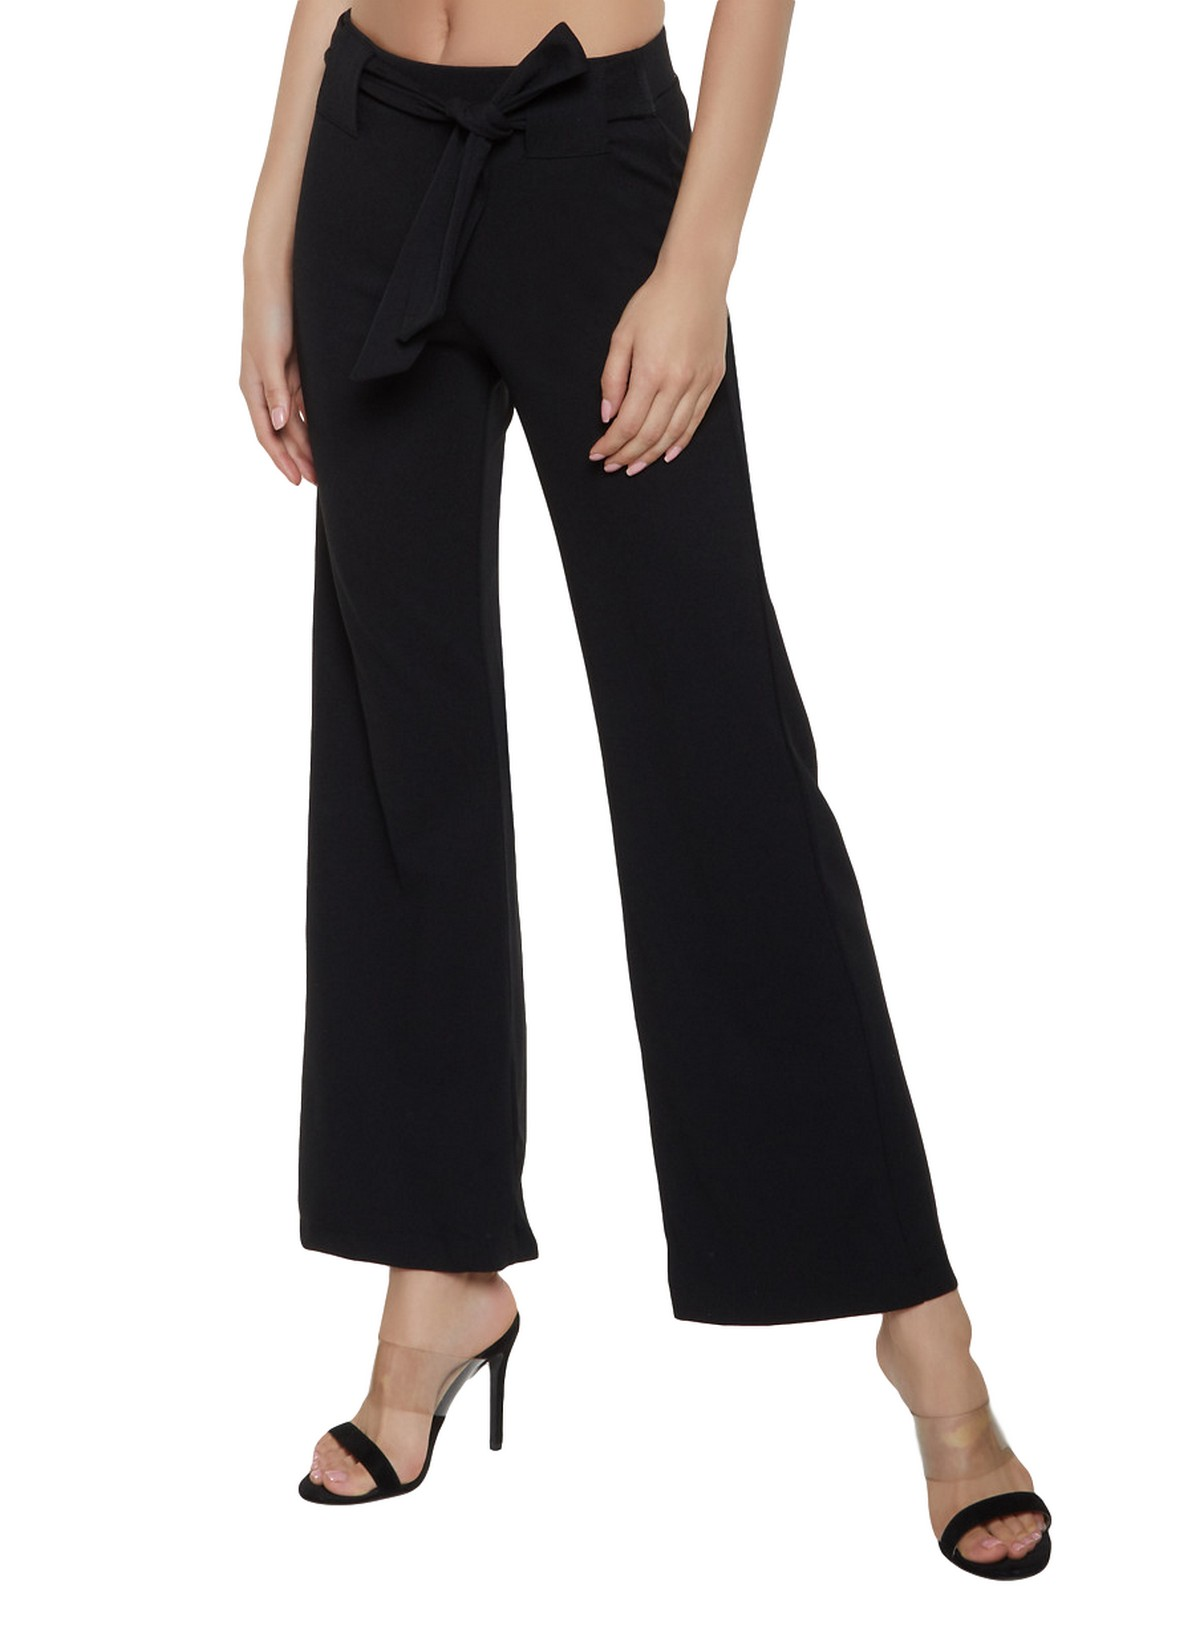 Slim Fit Culottes Trousers in Black